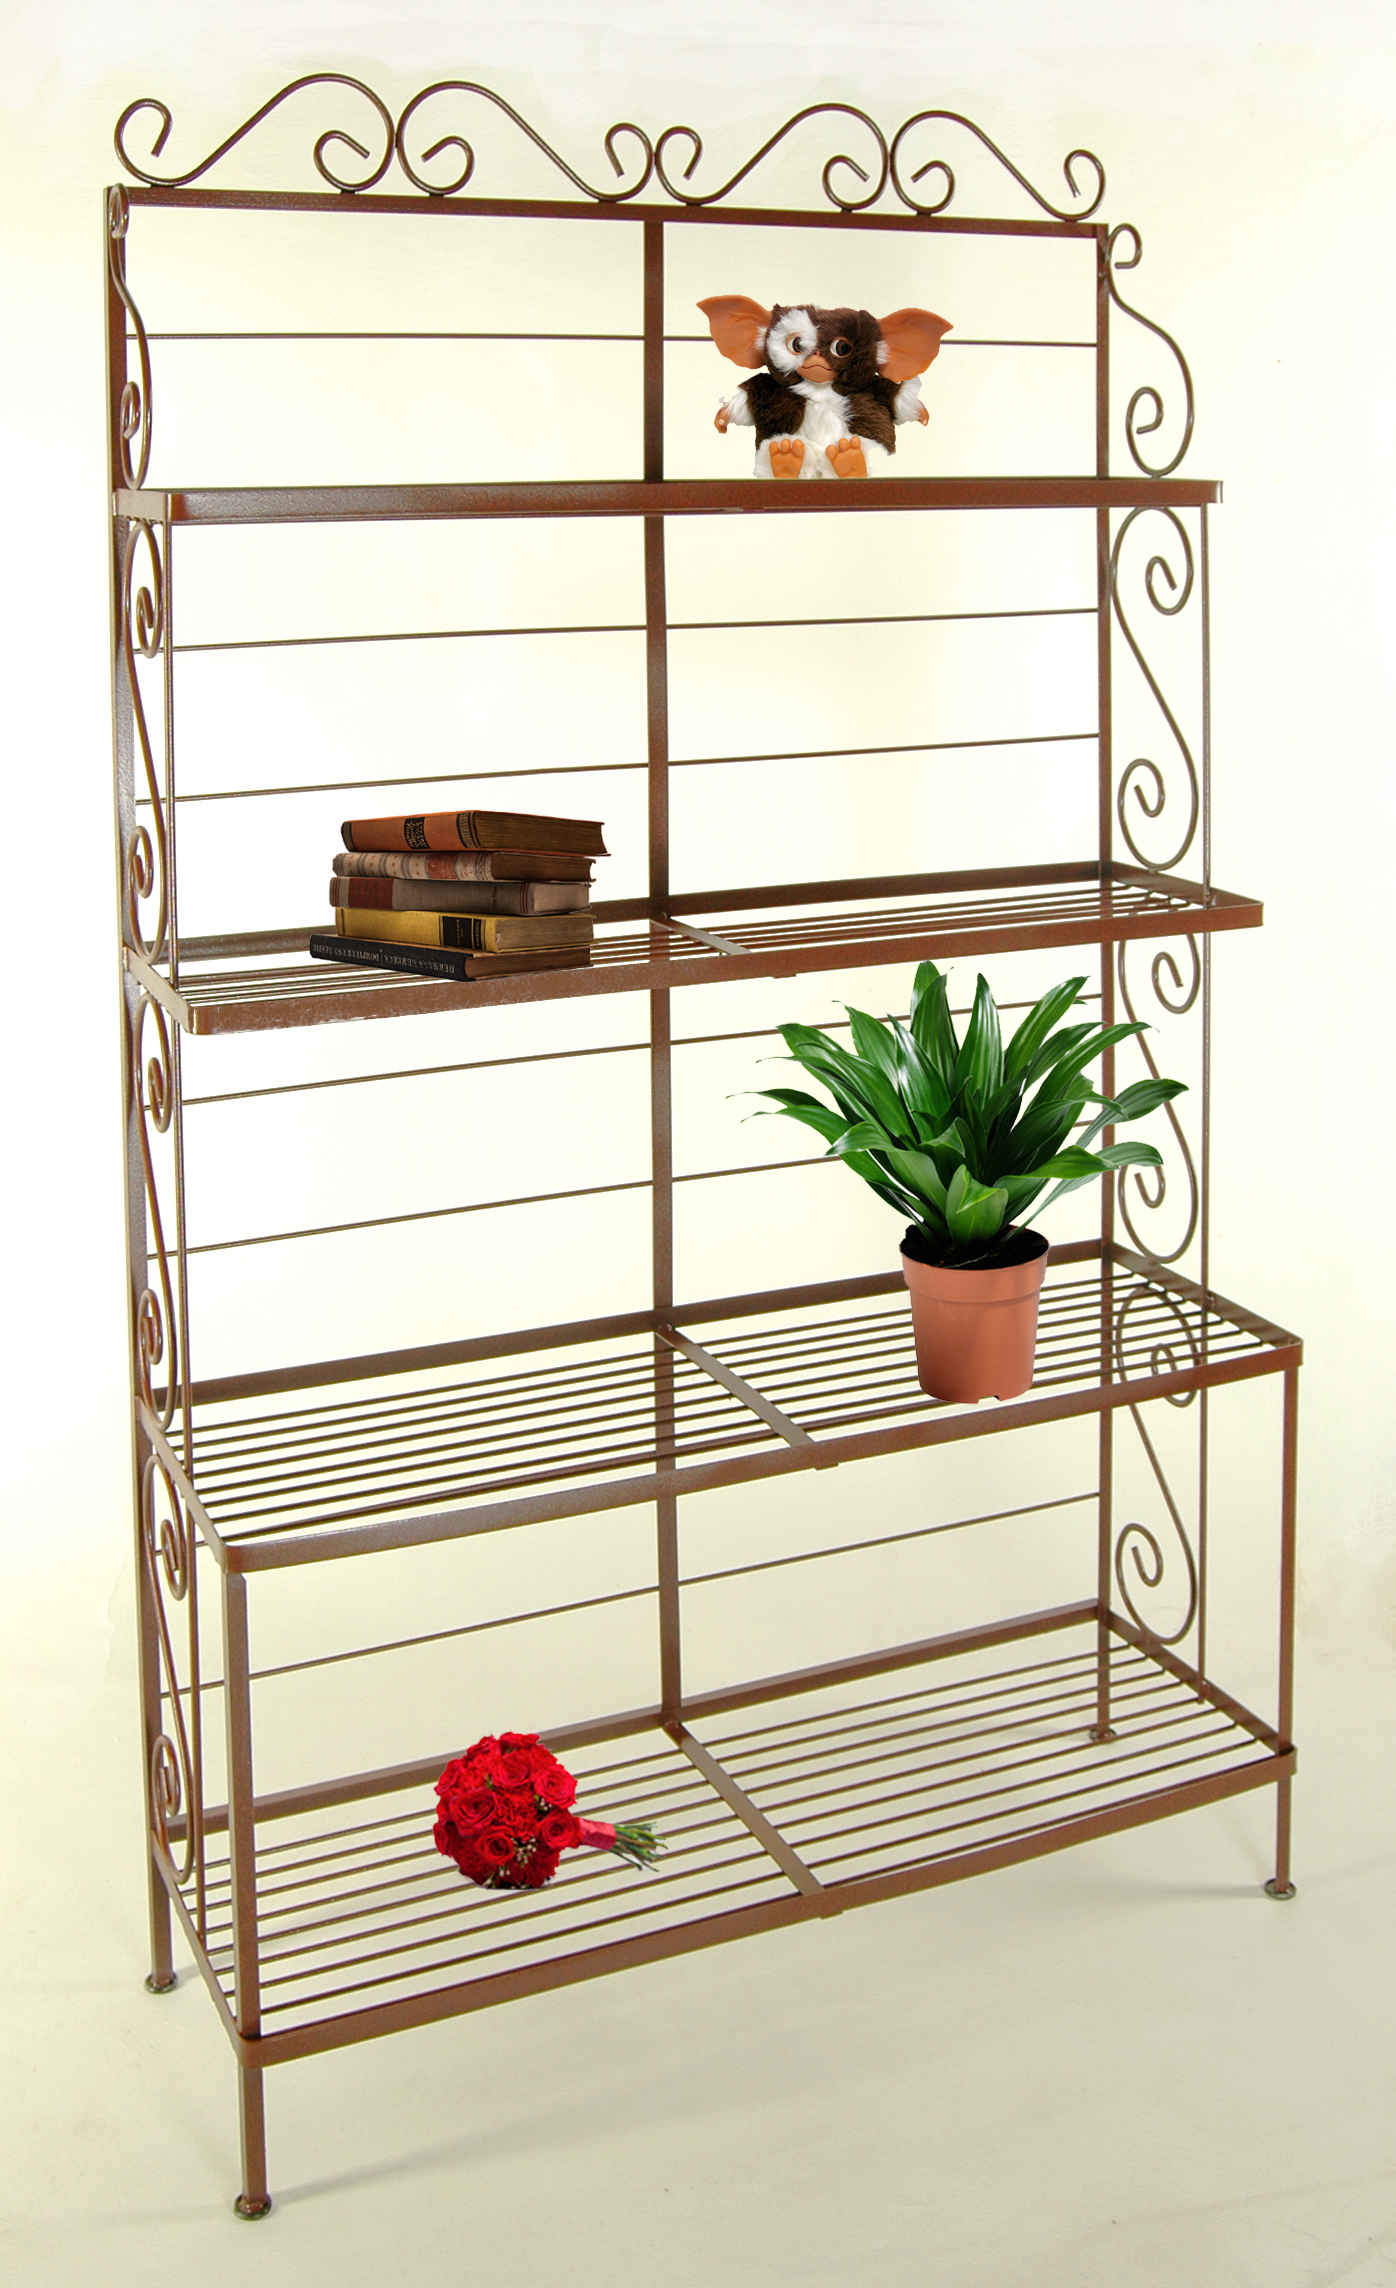 Graduated Bakers Racks with Wire Shelves